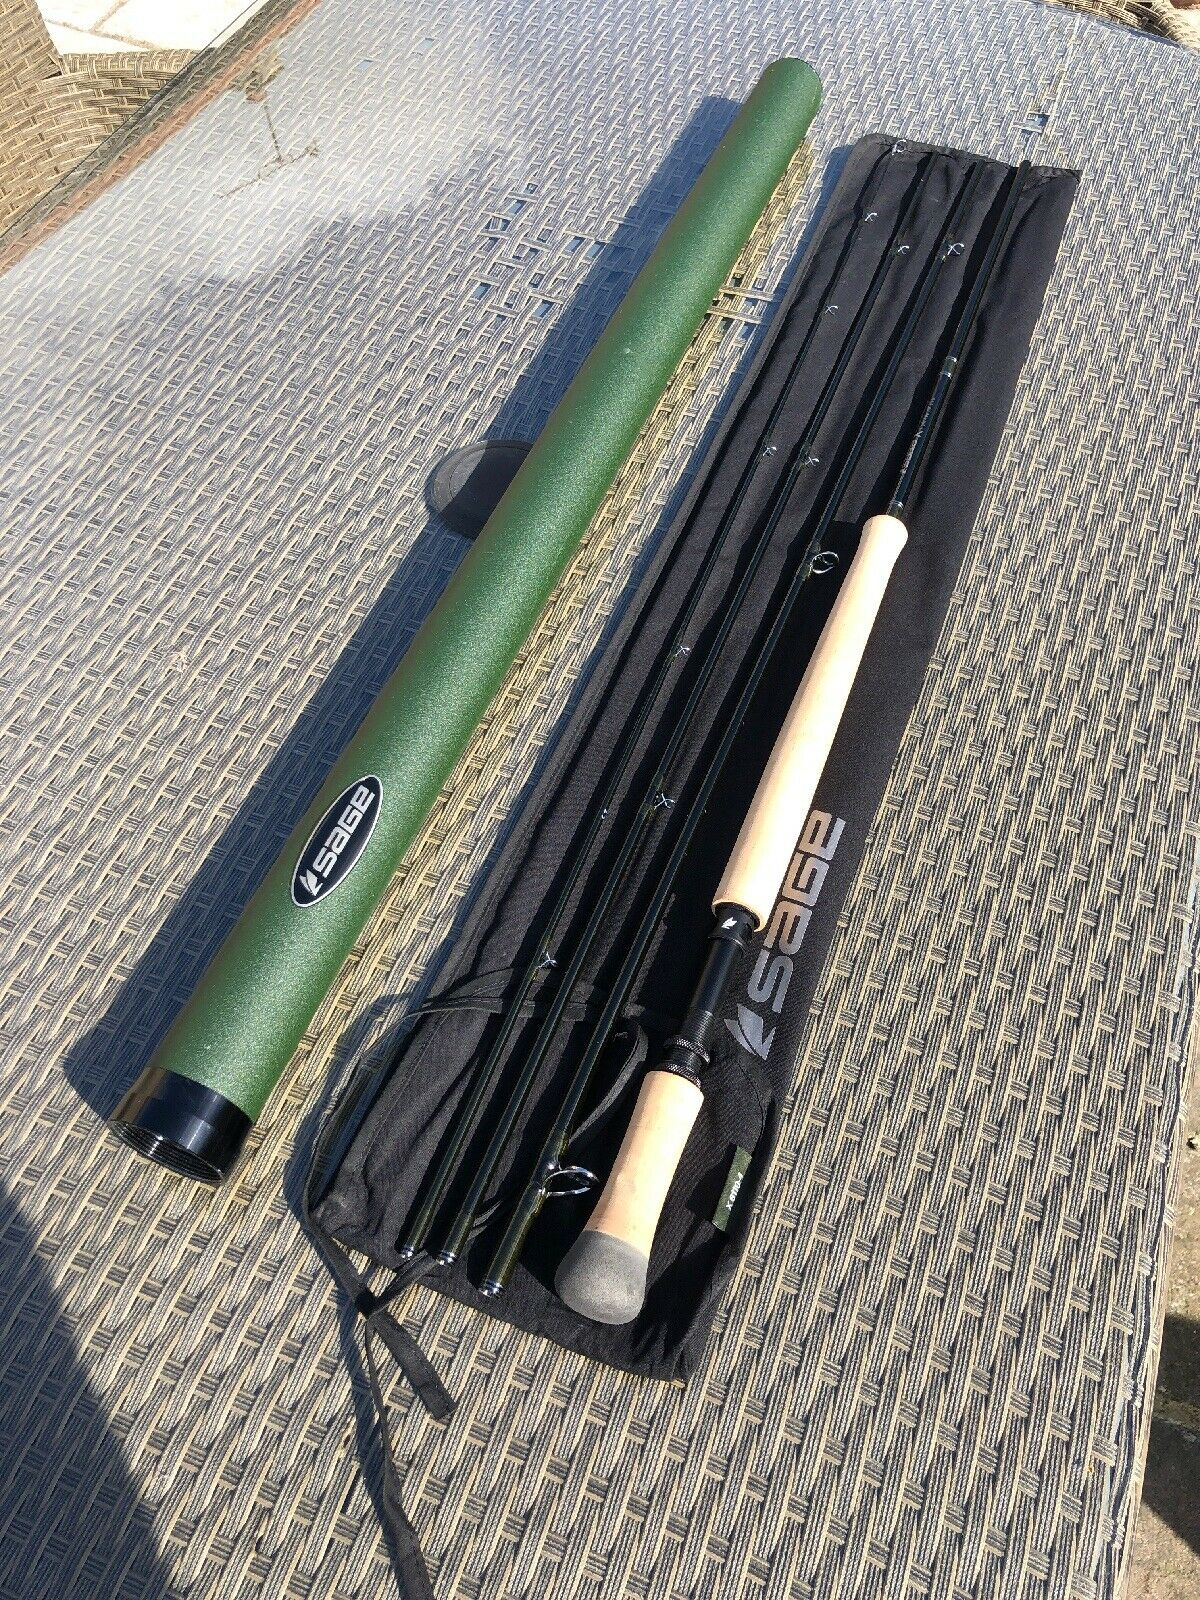 Sage X Switch Rod  11ft 8wt Fly Fishing Rod  check out the cheapest